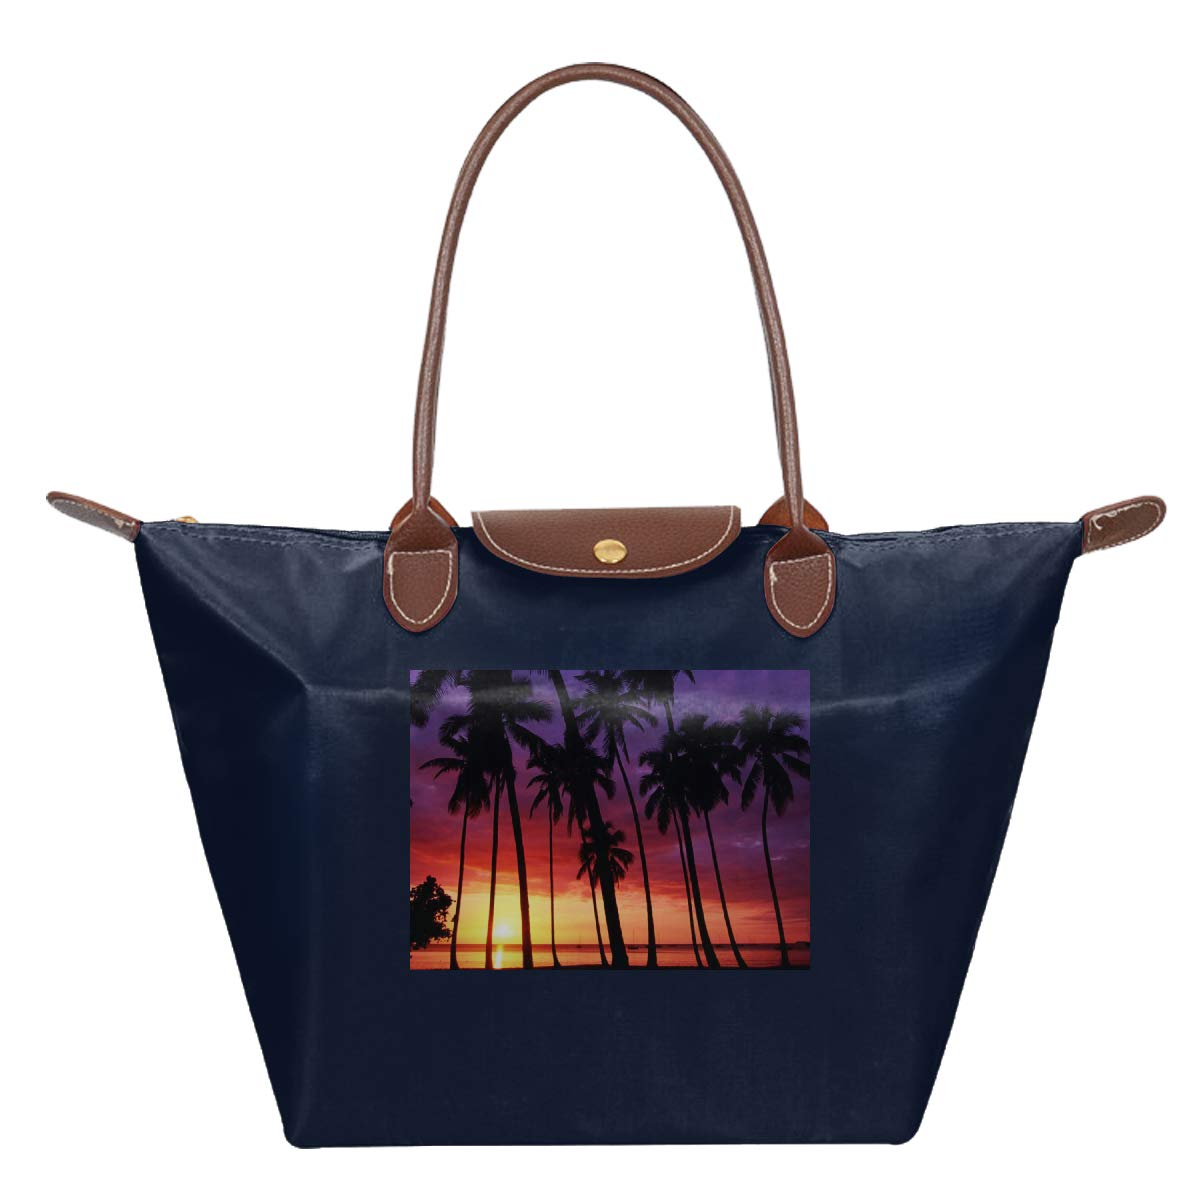 California Palm Trees Sunset Waterproof Leather Folded Messenger Nylon Bag Travel Tote Hopping Folding School Handbags